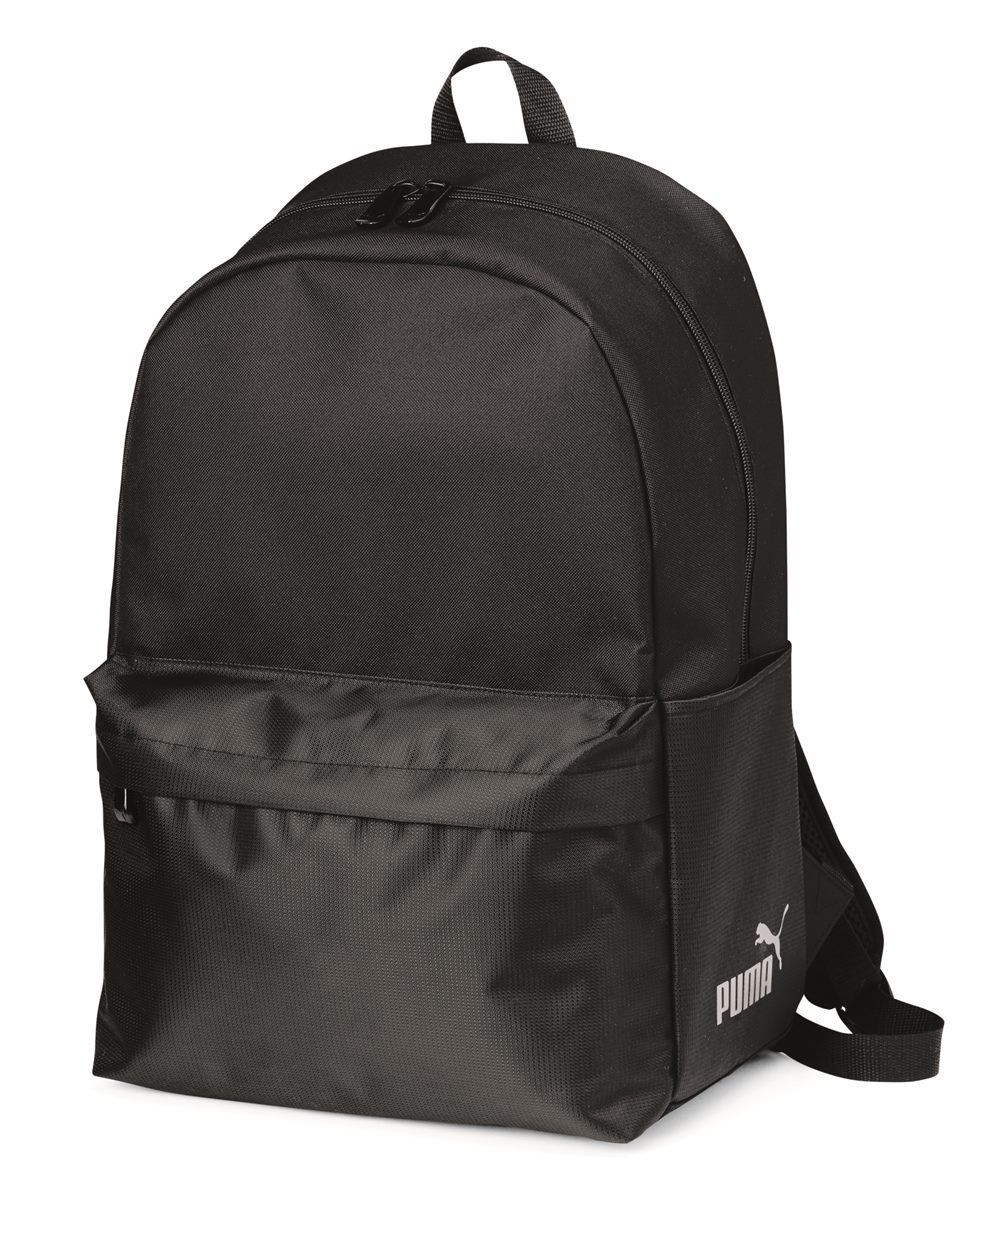 Puma PSC1030 - 24L Backpack